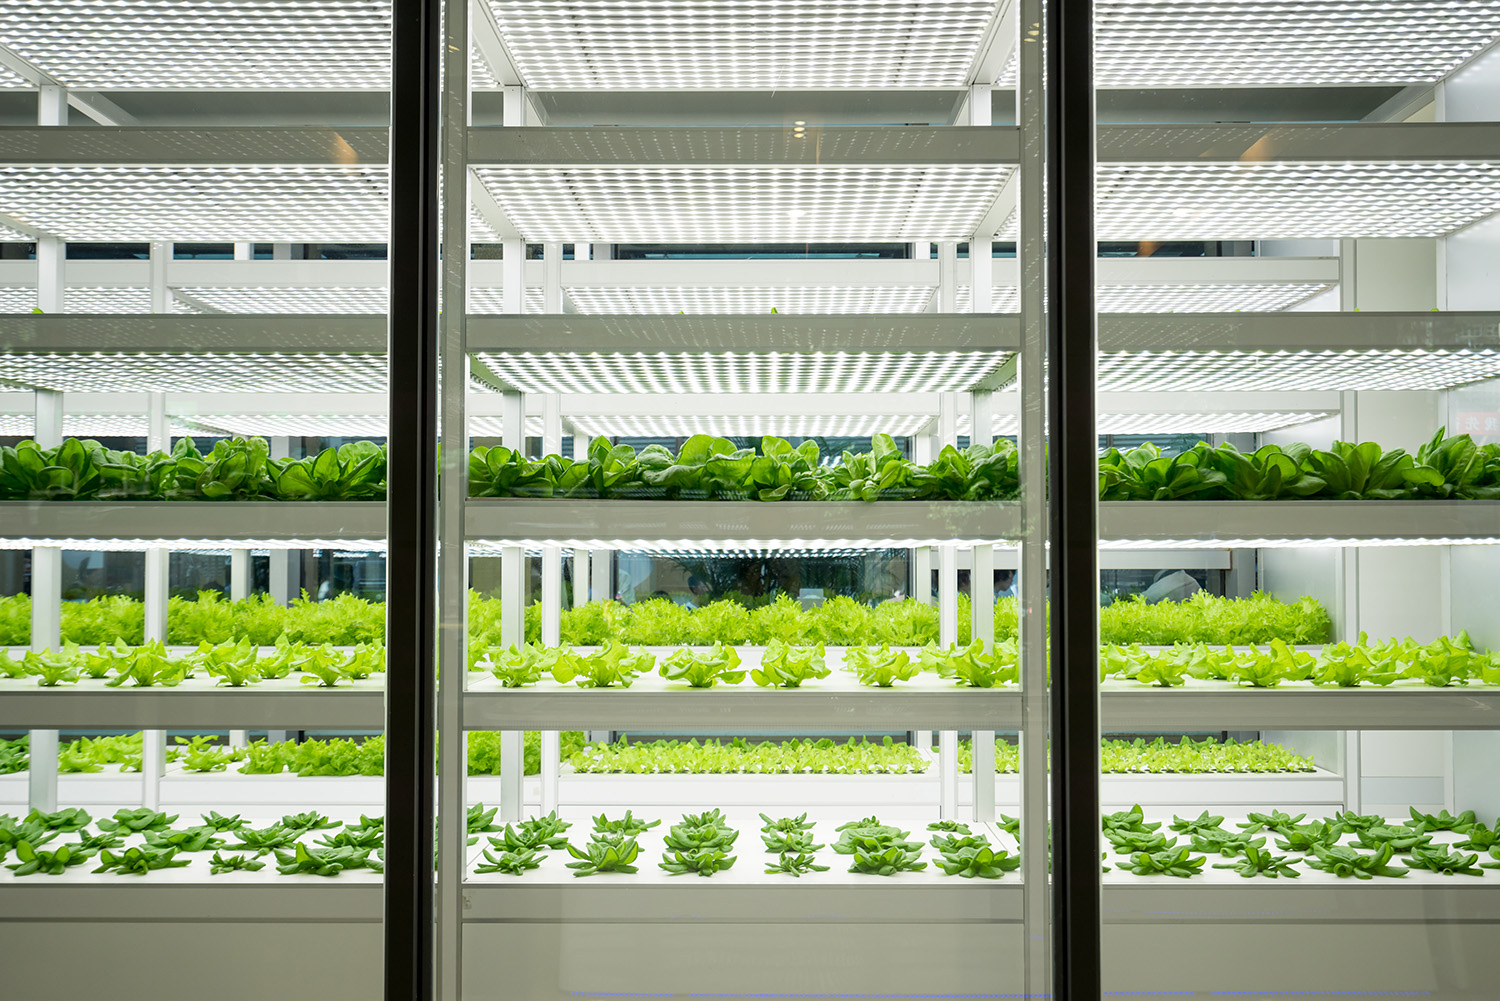 Vegetable farm, vertical farming, could be used for Aerofarms?